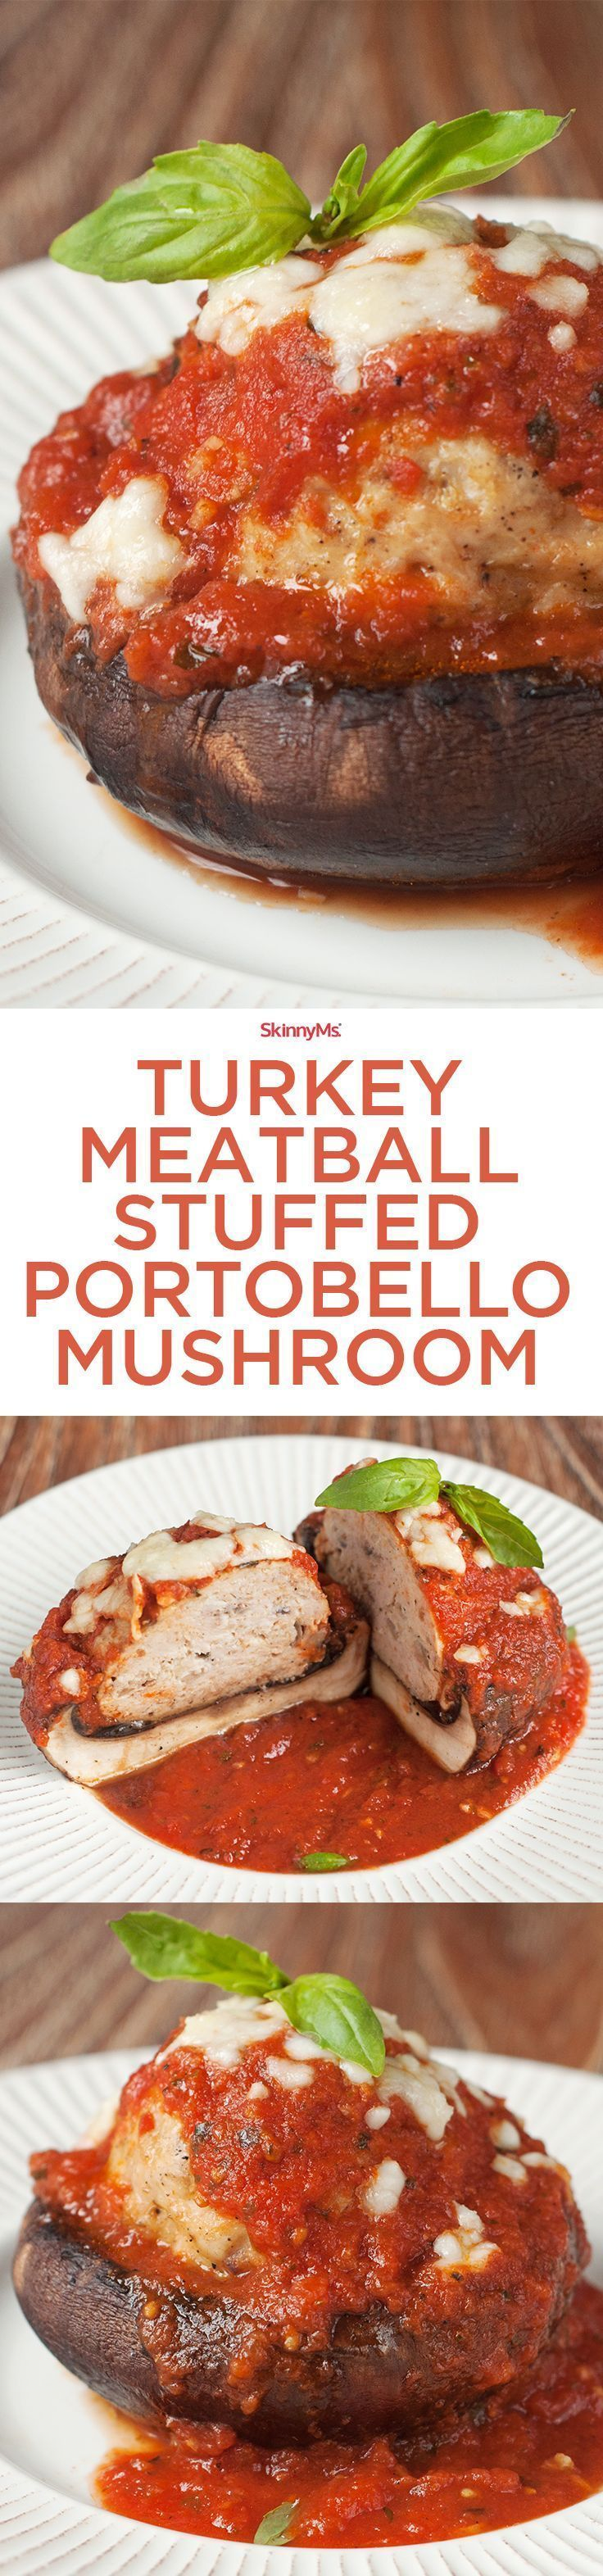 Beautiful turkey meatball stuffed portobello mushrooms are topped with marinara and mozzarella, making them as delicious as they are healthy.